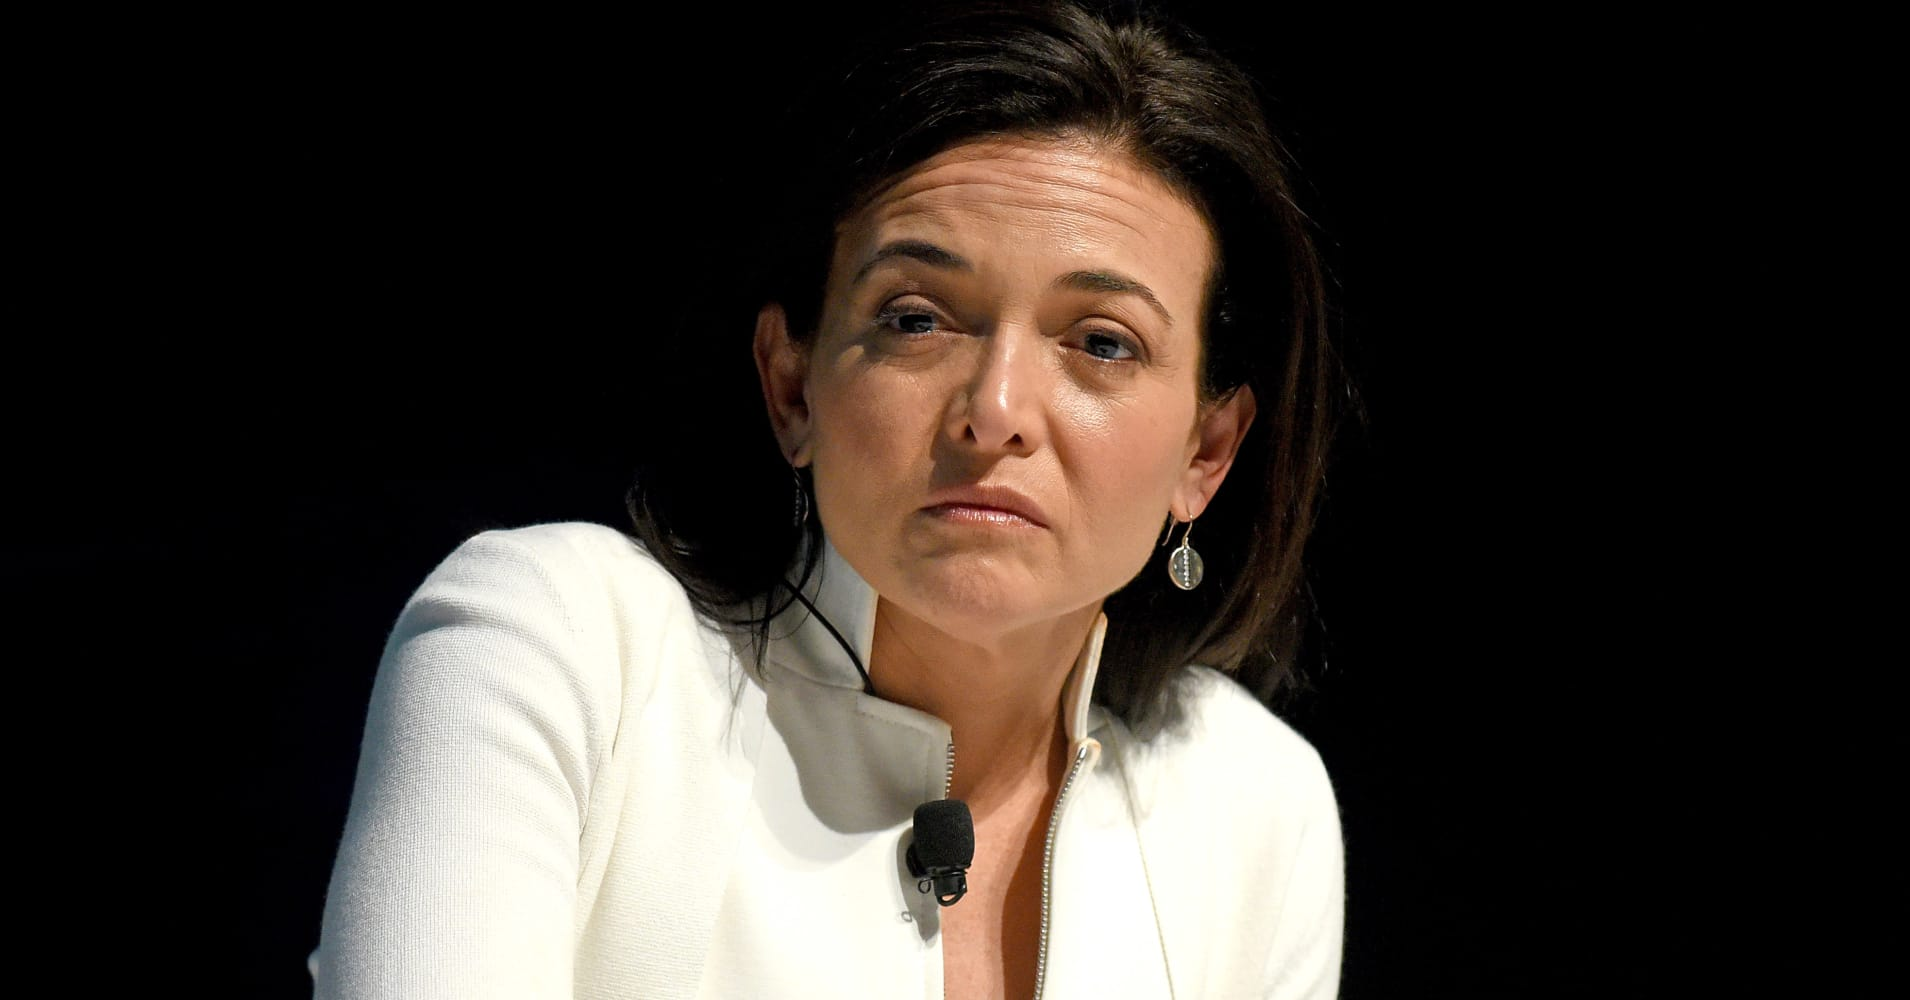 Zuckerberg and Sandberg will reportedly stay quiet on Cambridge Analytica until after audit